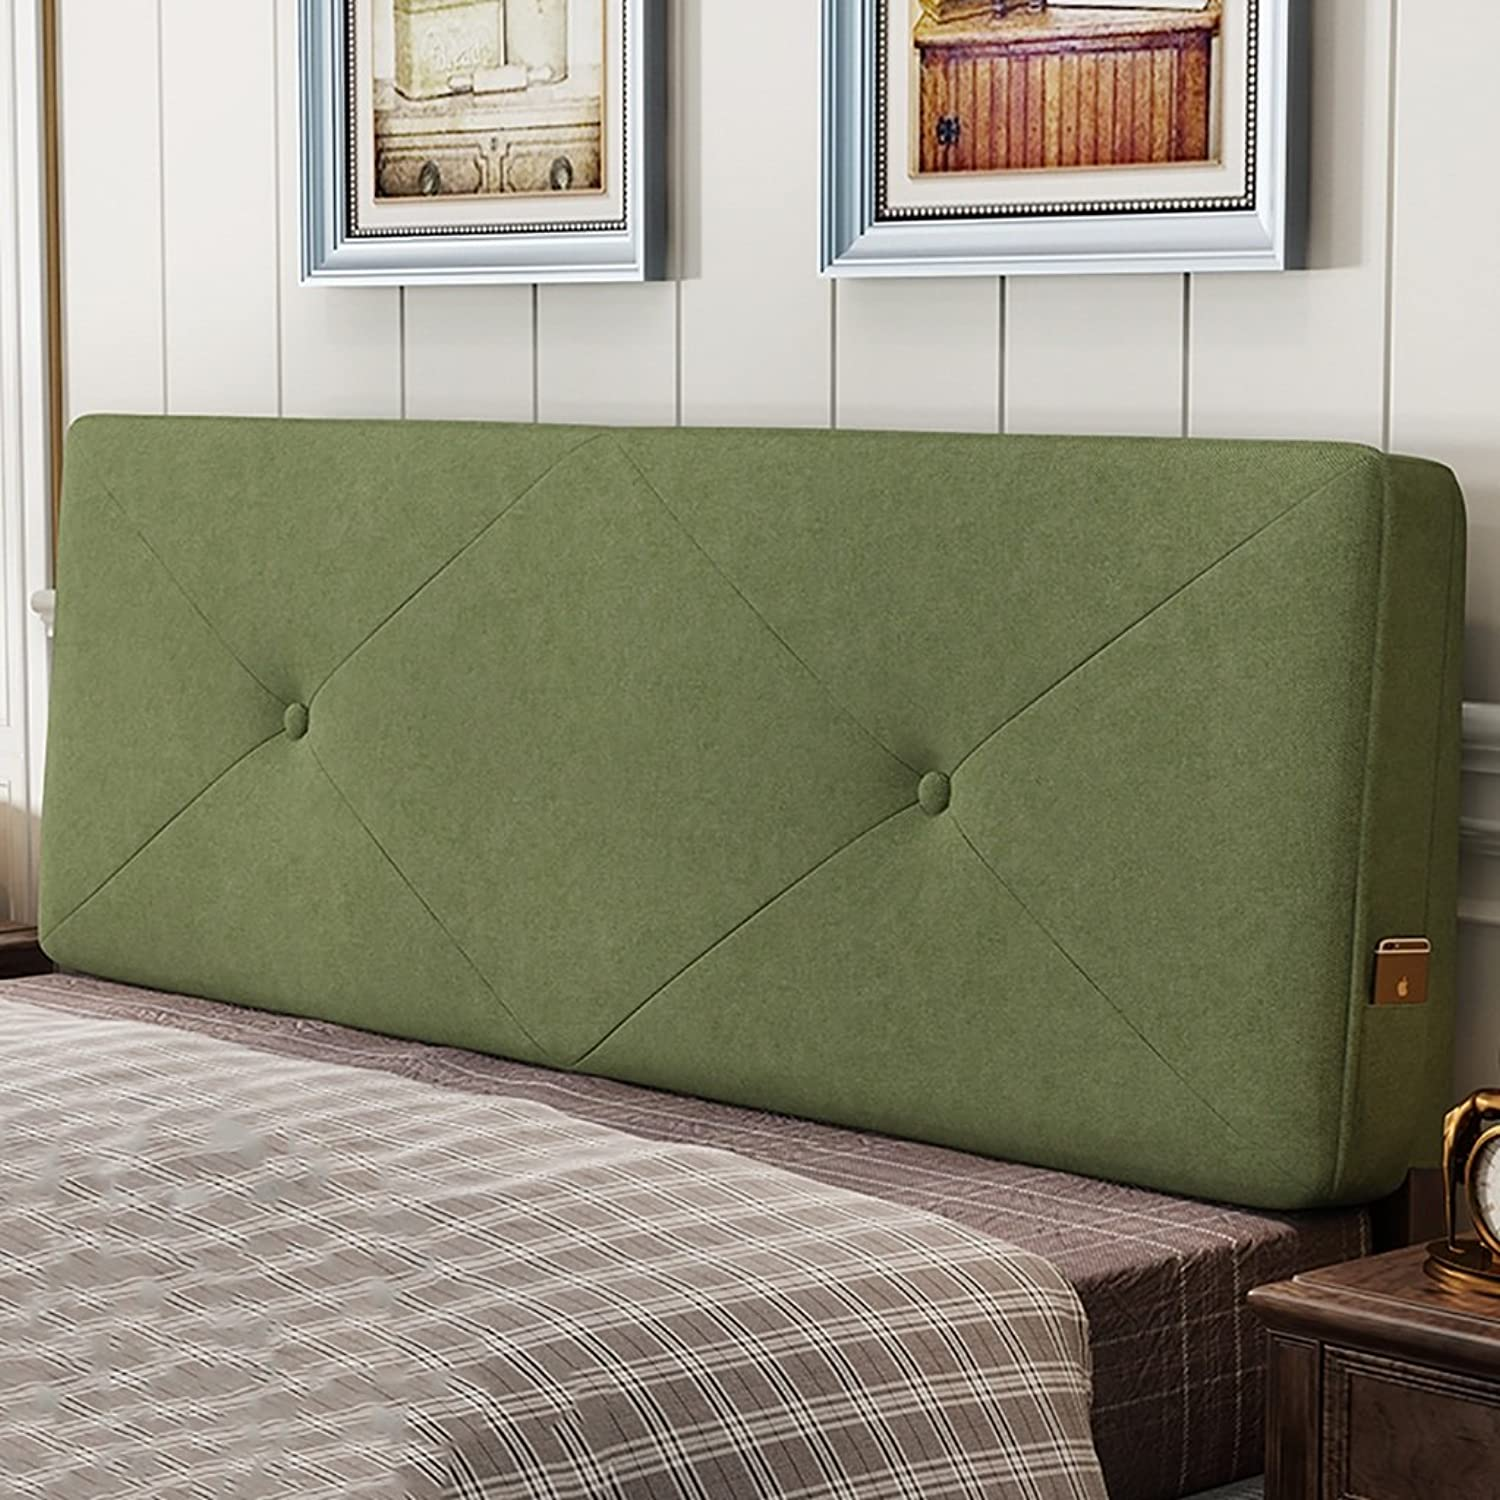 Headboard Bed Backrest Cushion Bed Cushion Bedside Pillow Headboard Polyester Fabric Large Soft Pillow Lumbar Support Detachable Washable 5 Solid colors 5